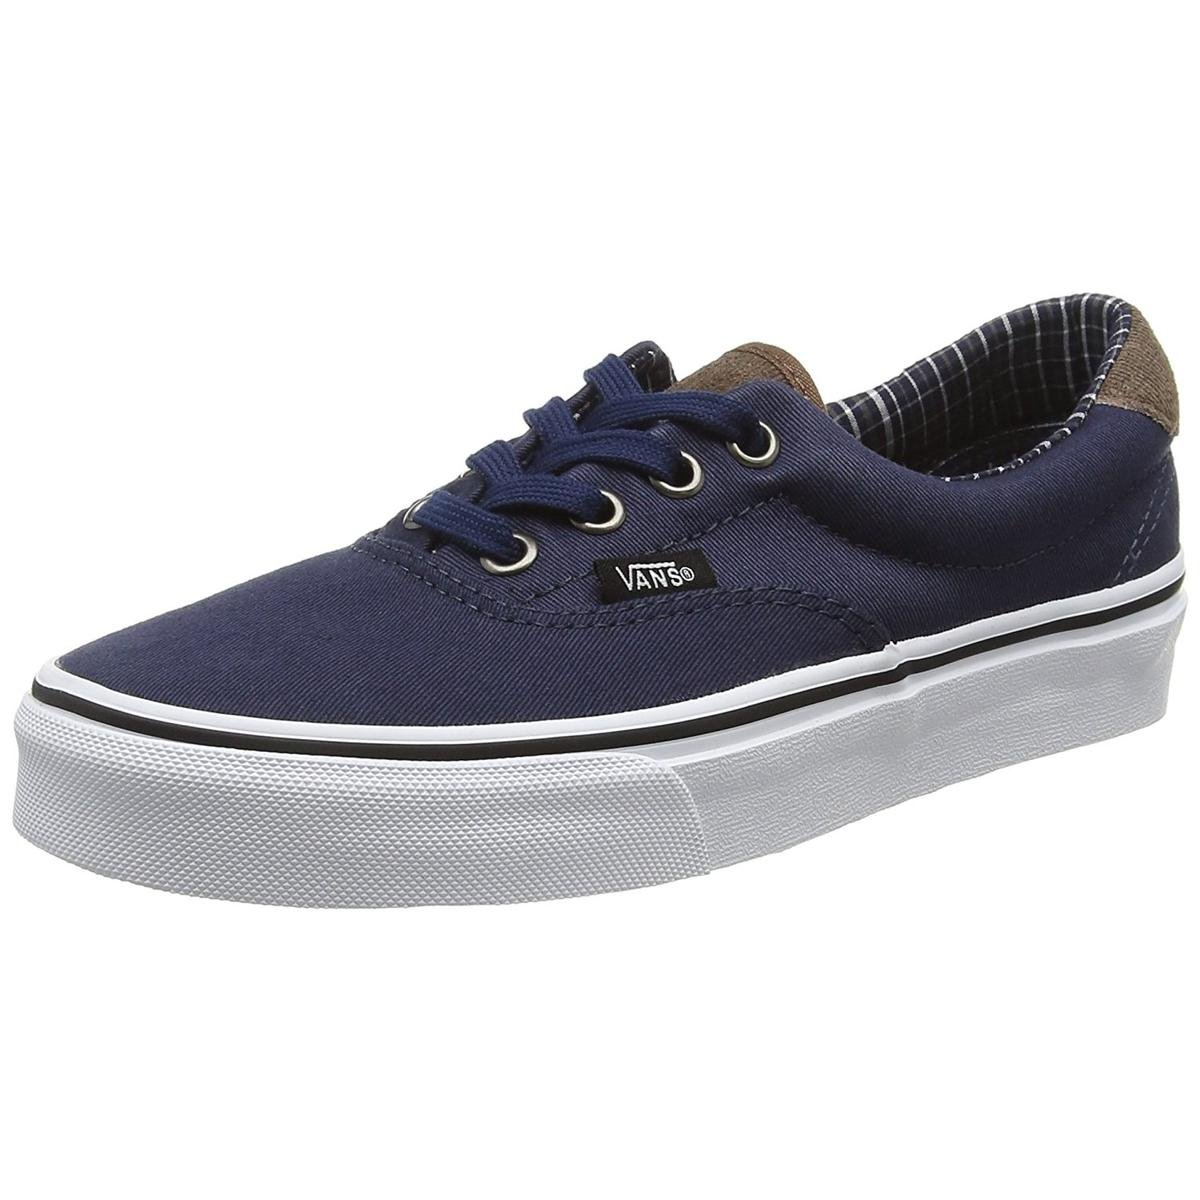 2d443c7bc0 Galleon - Vans Unisex Era 59 Skate Shoe (6.5 D(M) US